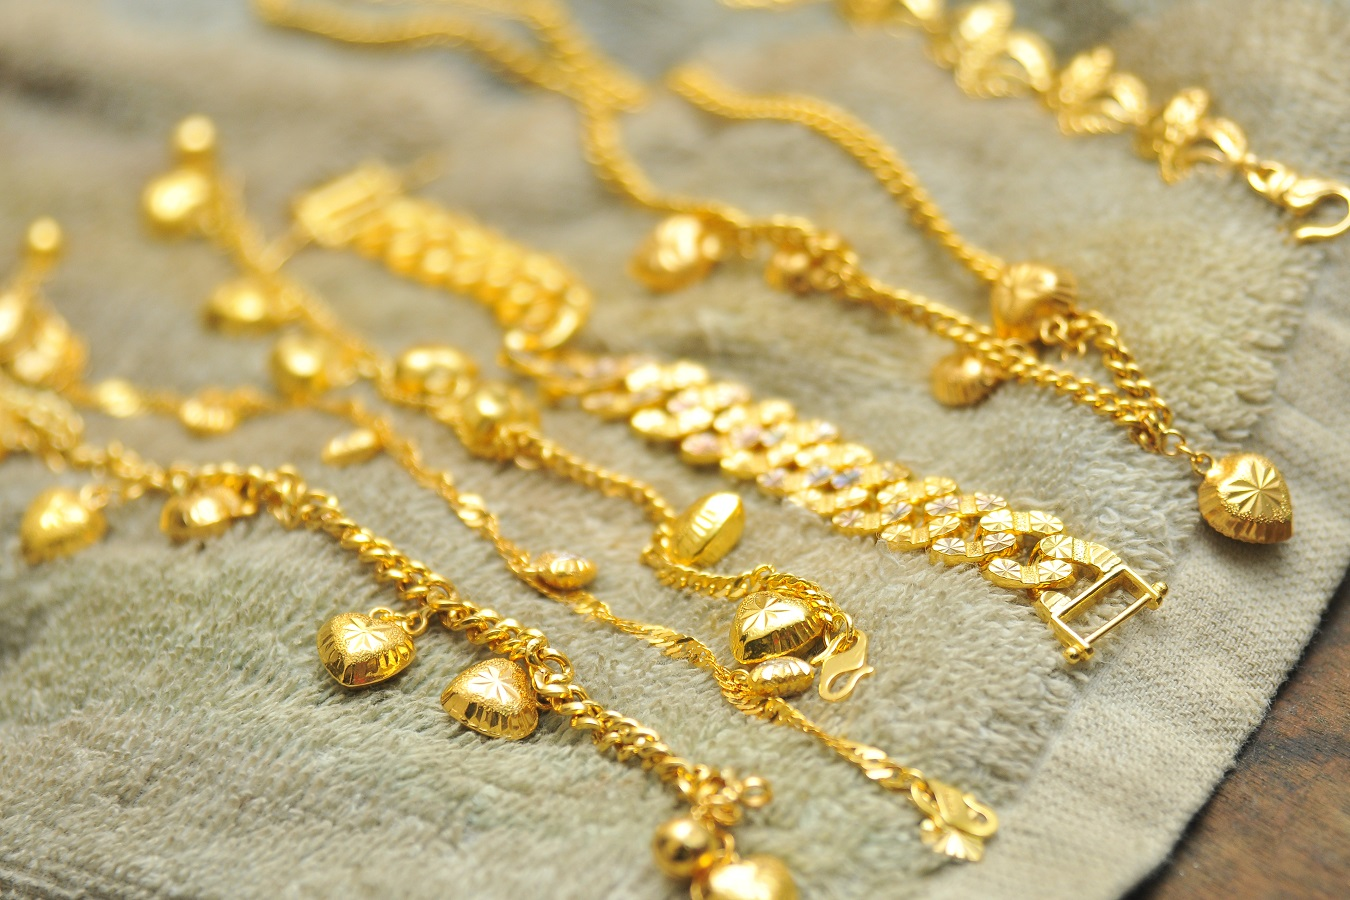 Gold Jewellery: A few interesting facts